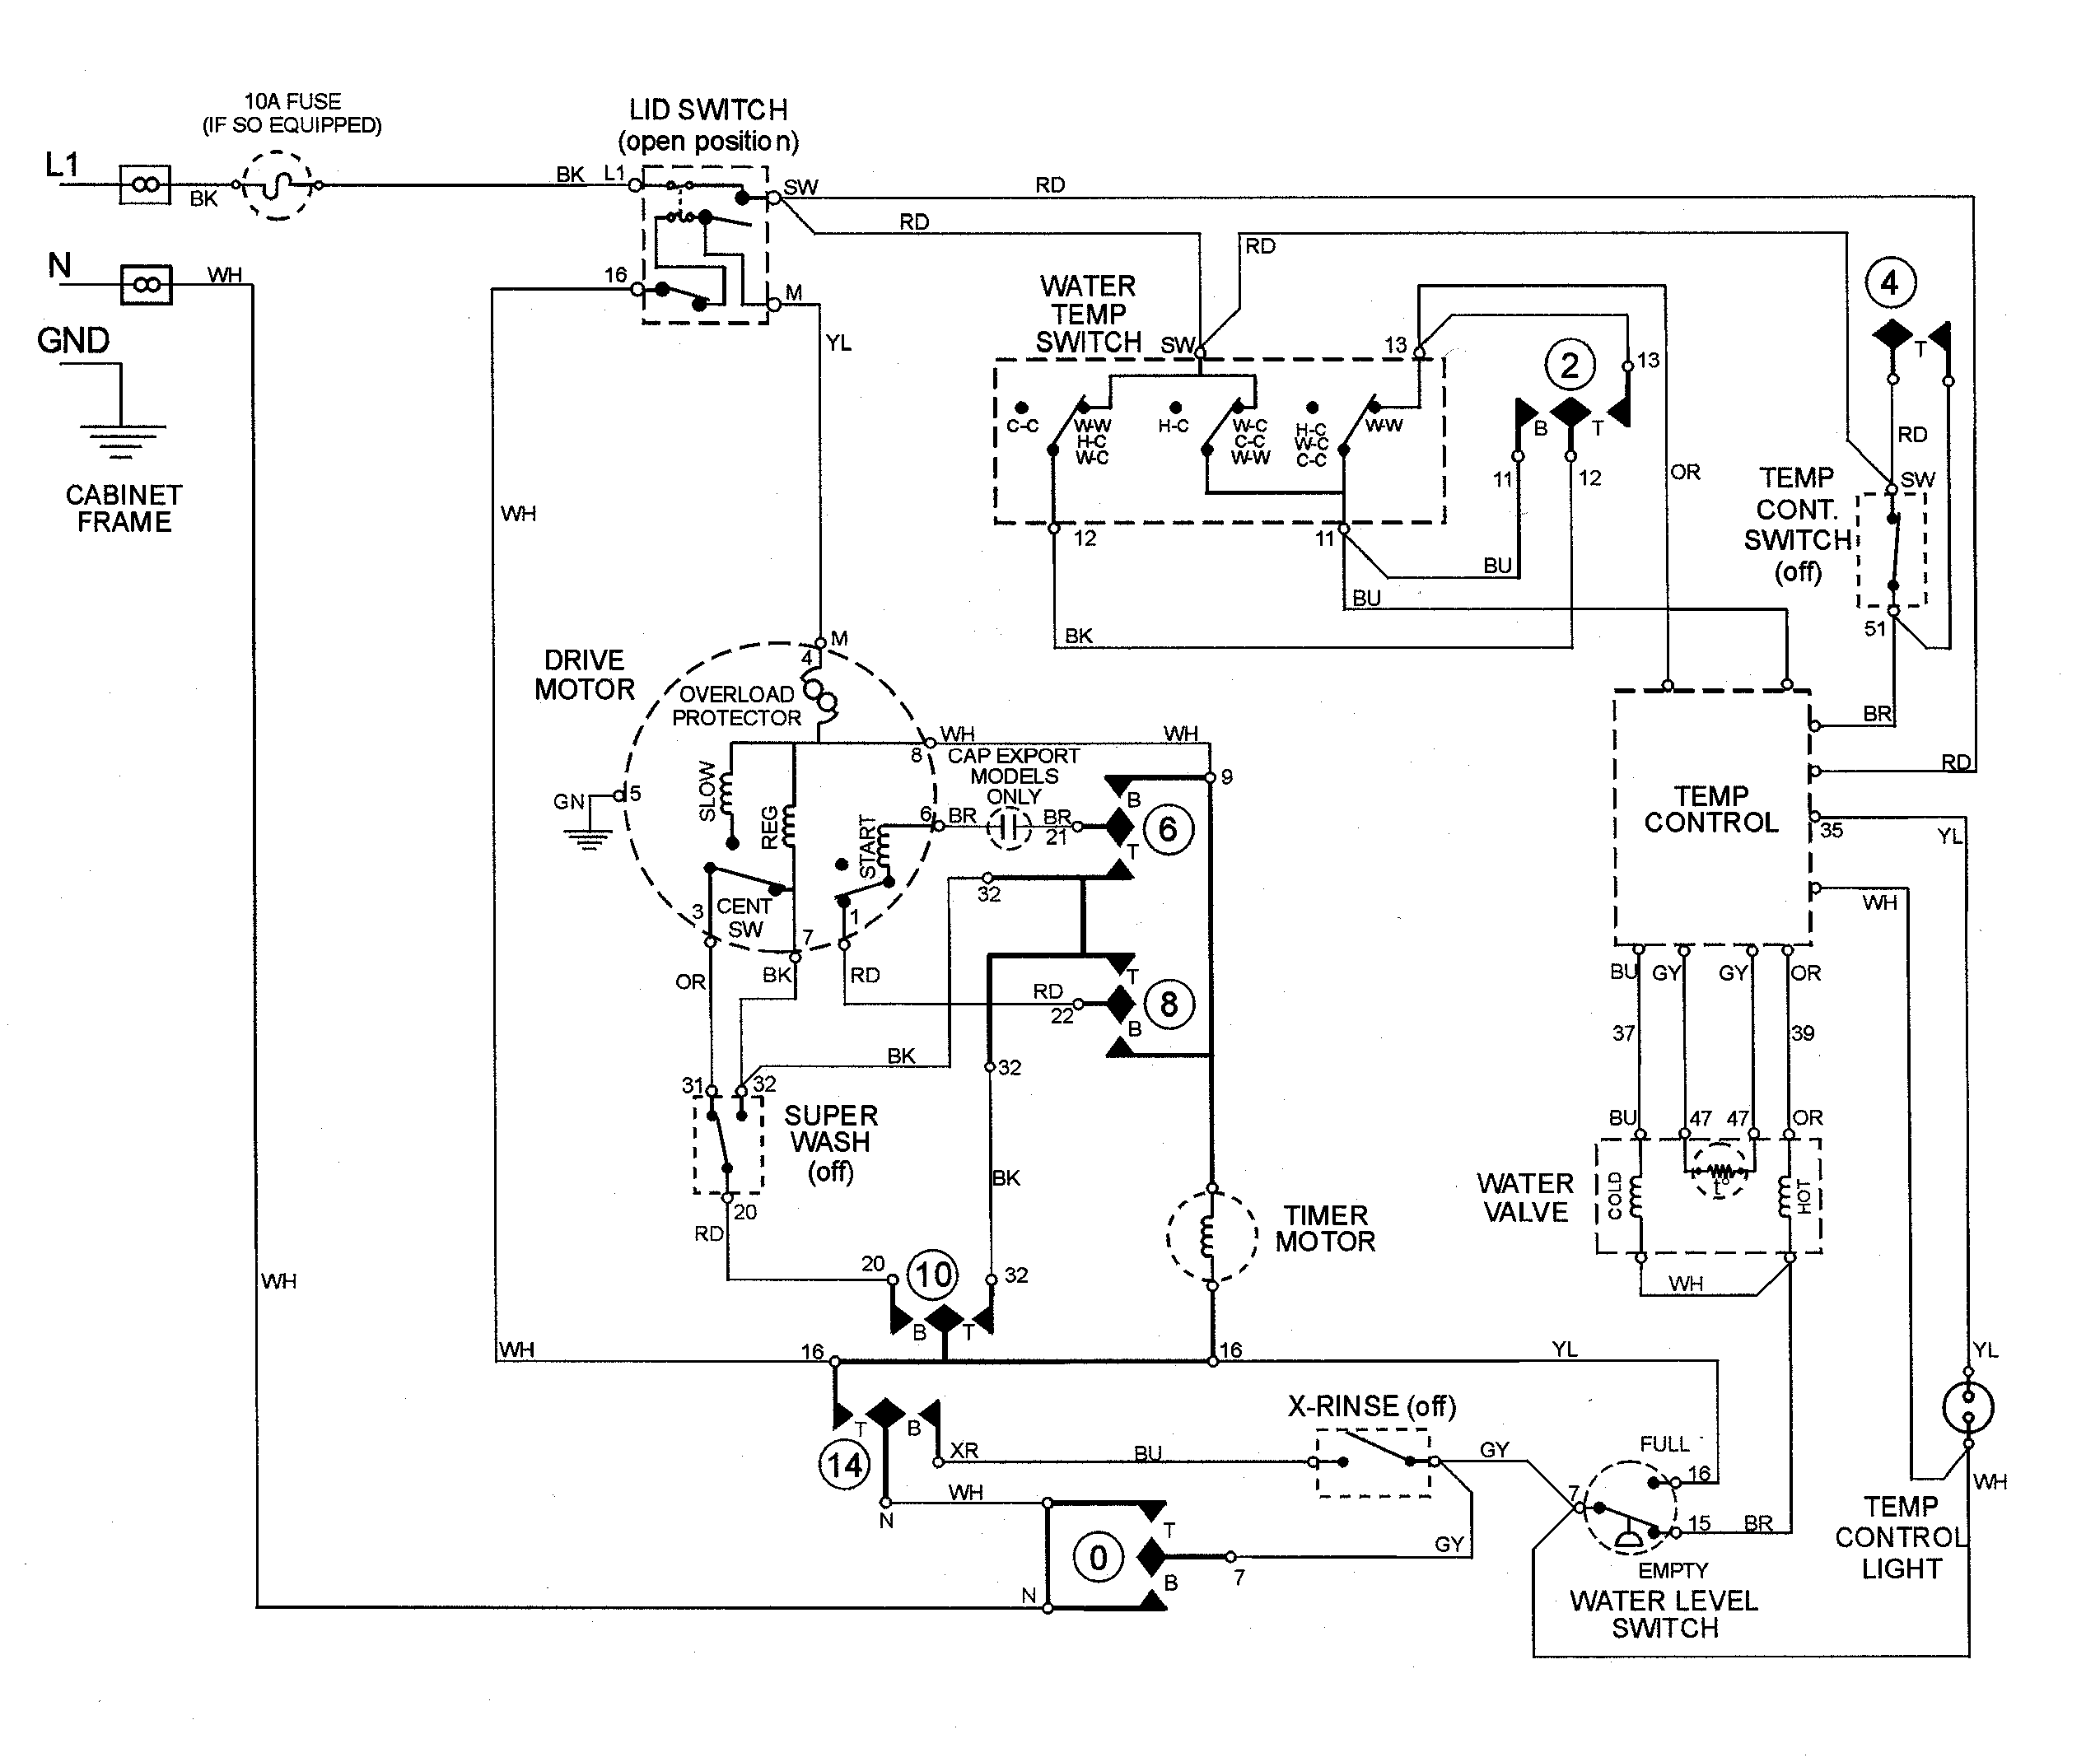 Wiring Diagram Of Washing Machine Motor | wiring diagram ... on